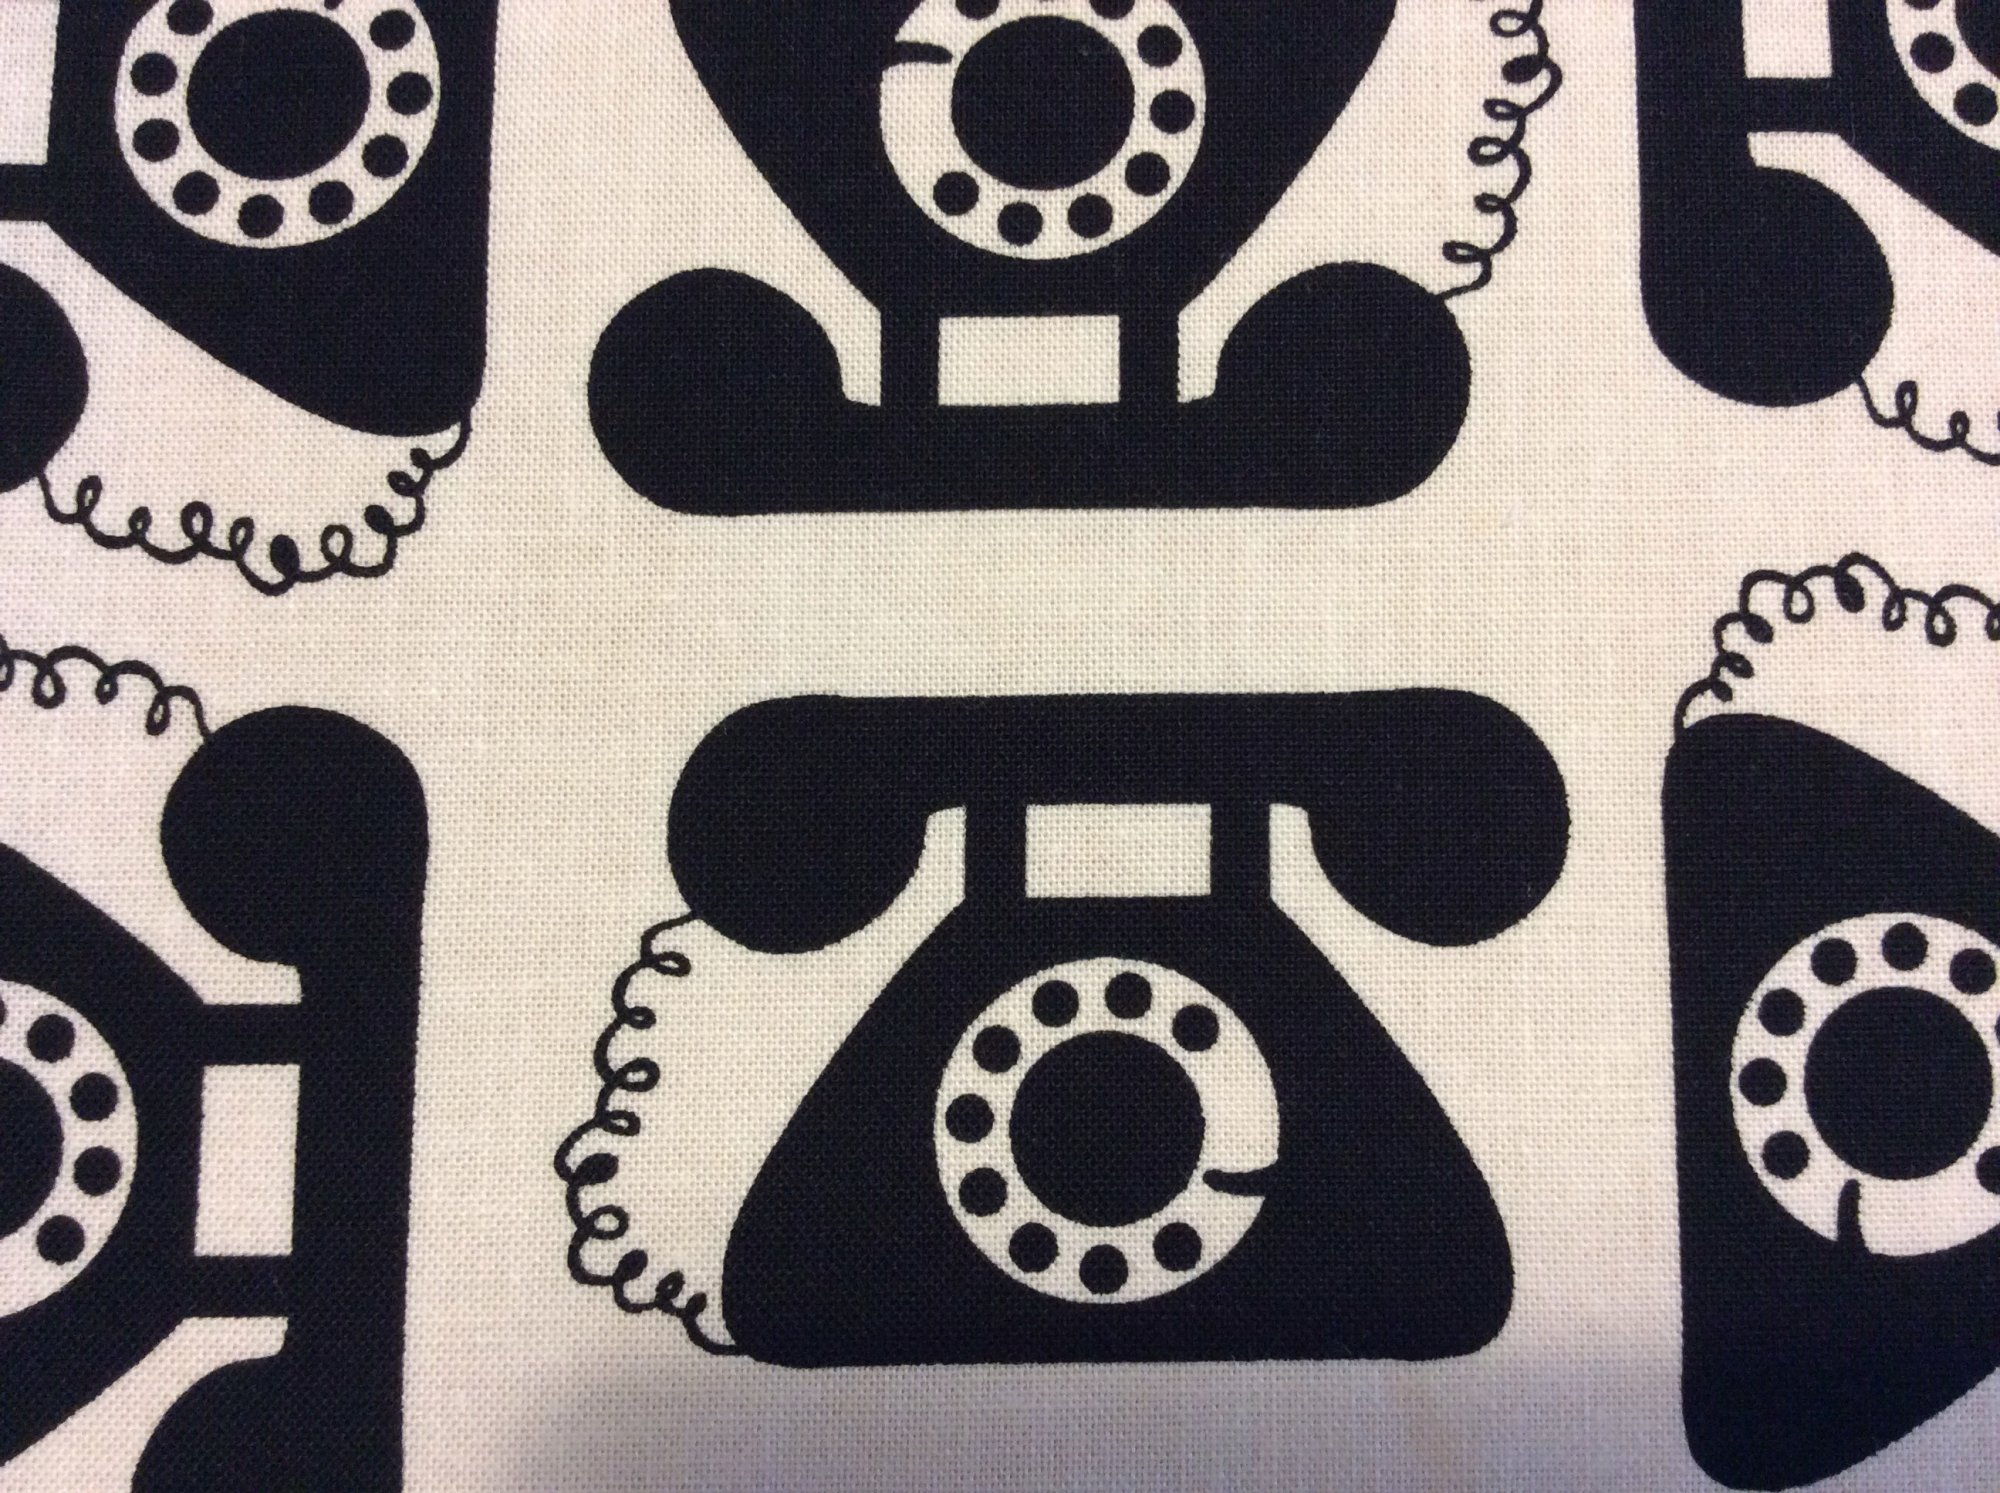 RK105 Ring Ring Dial Telephone Retro Ma Bell Phone Cotton Quilting Fabric